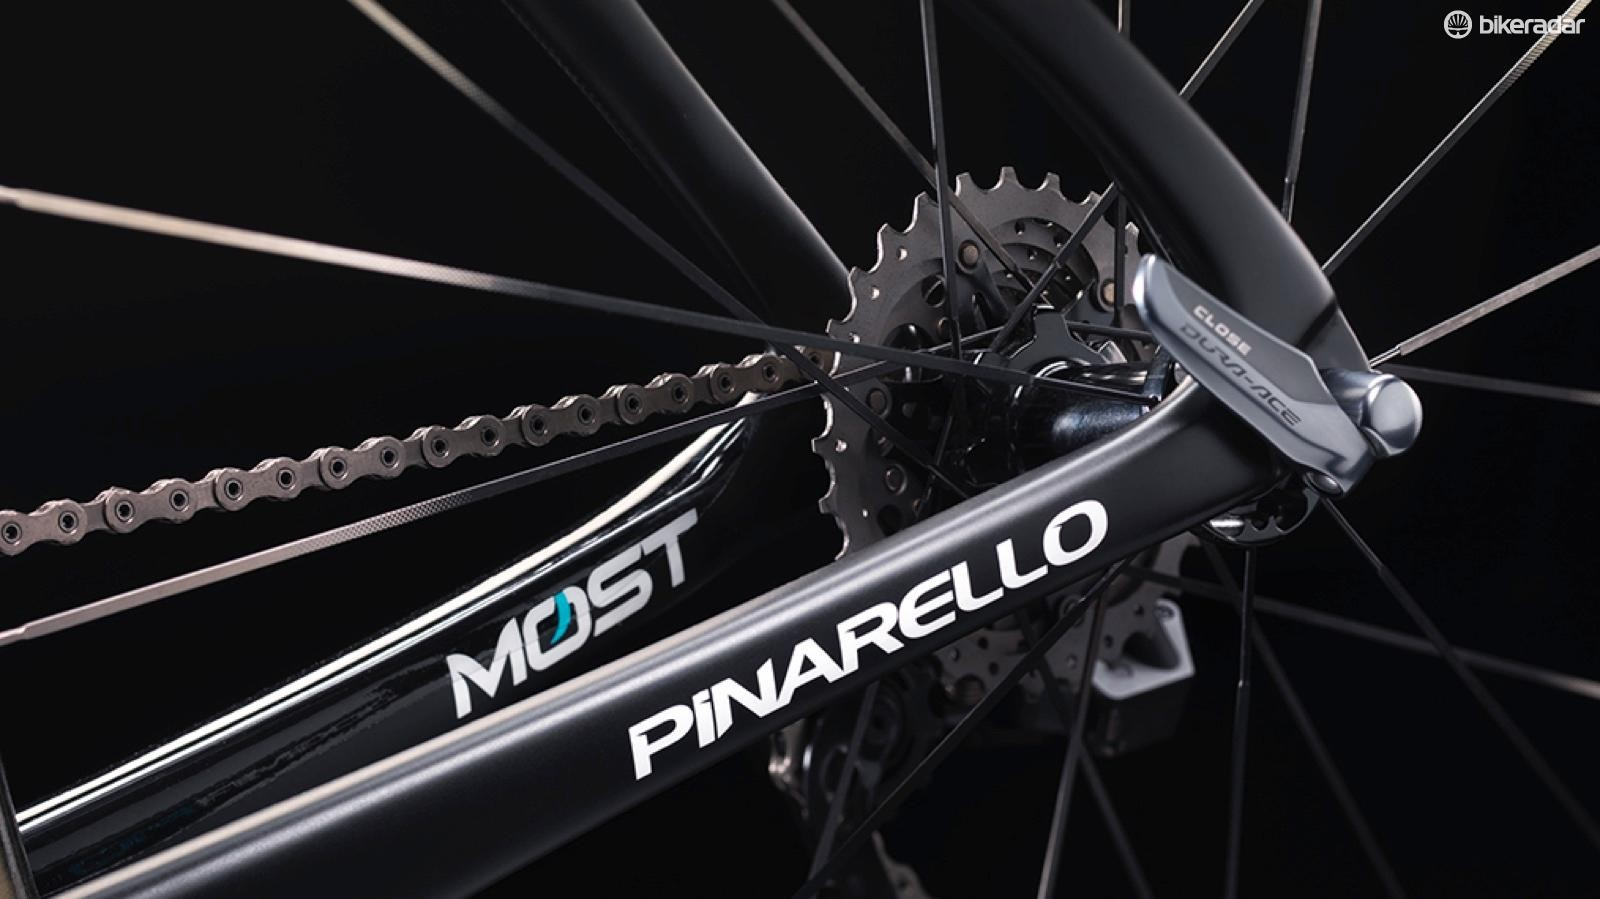 Pinarello and MOST (the brand's component wing) decals sit on the chainstays